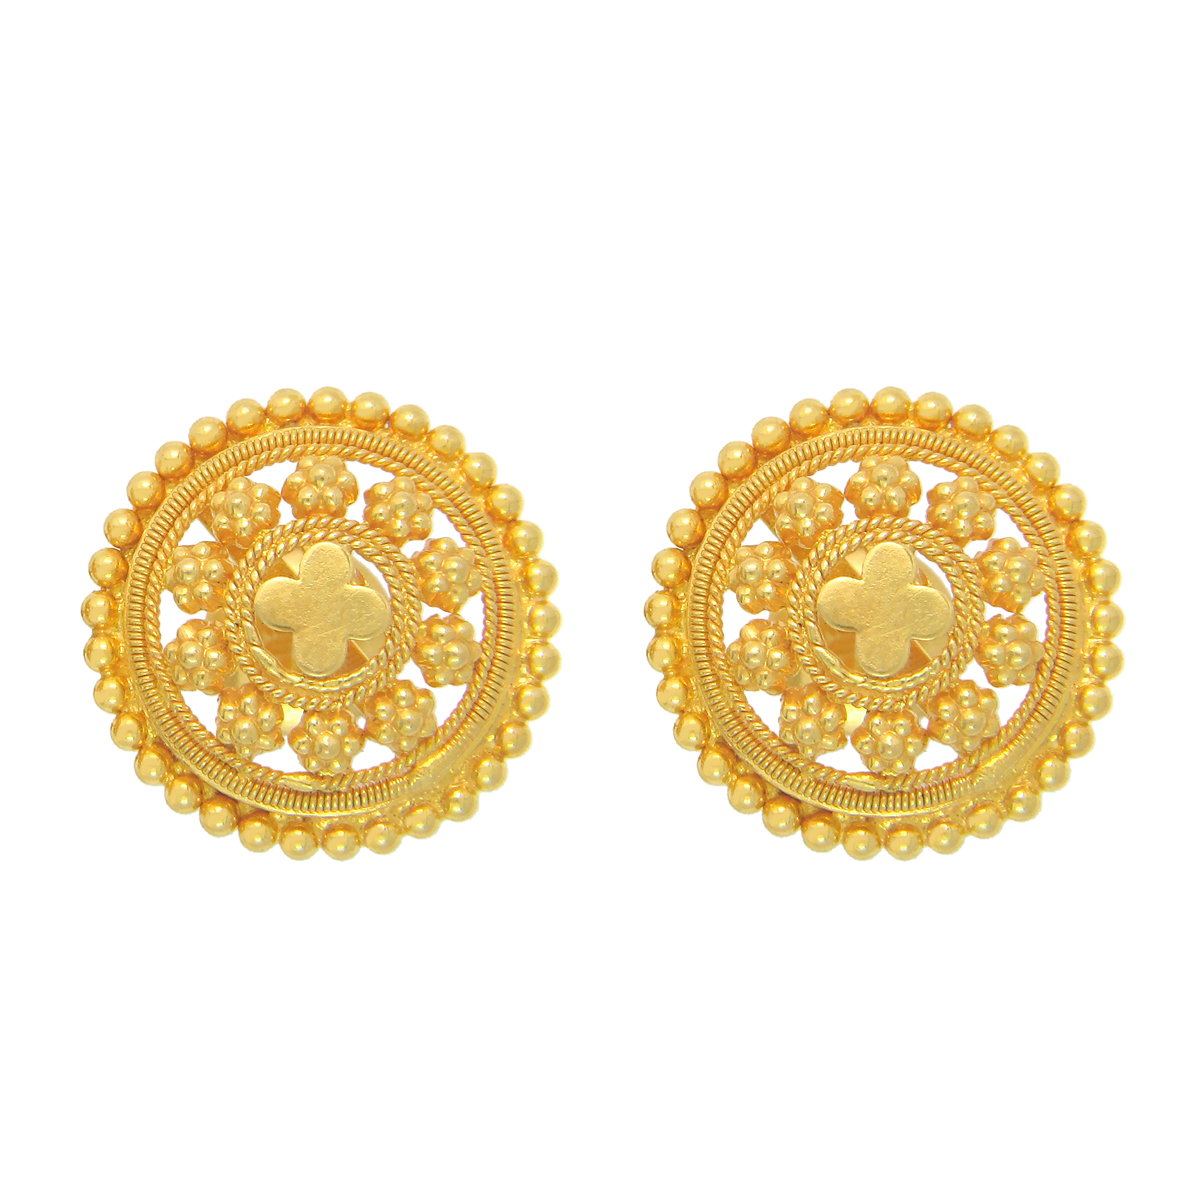 Popley 22Kt Gold Bandhan Earring - A41